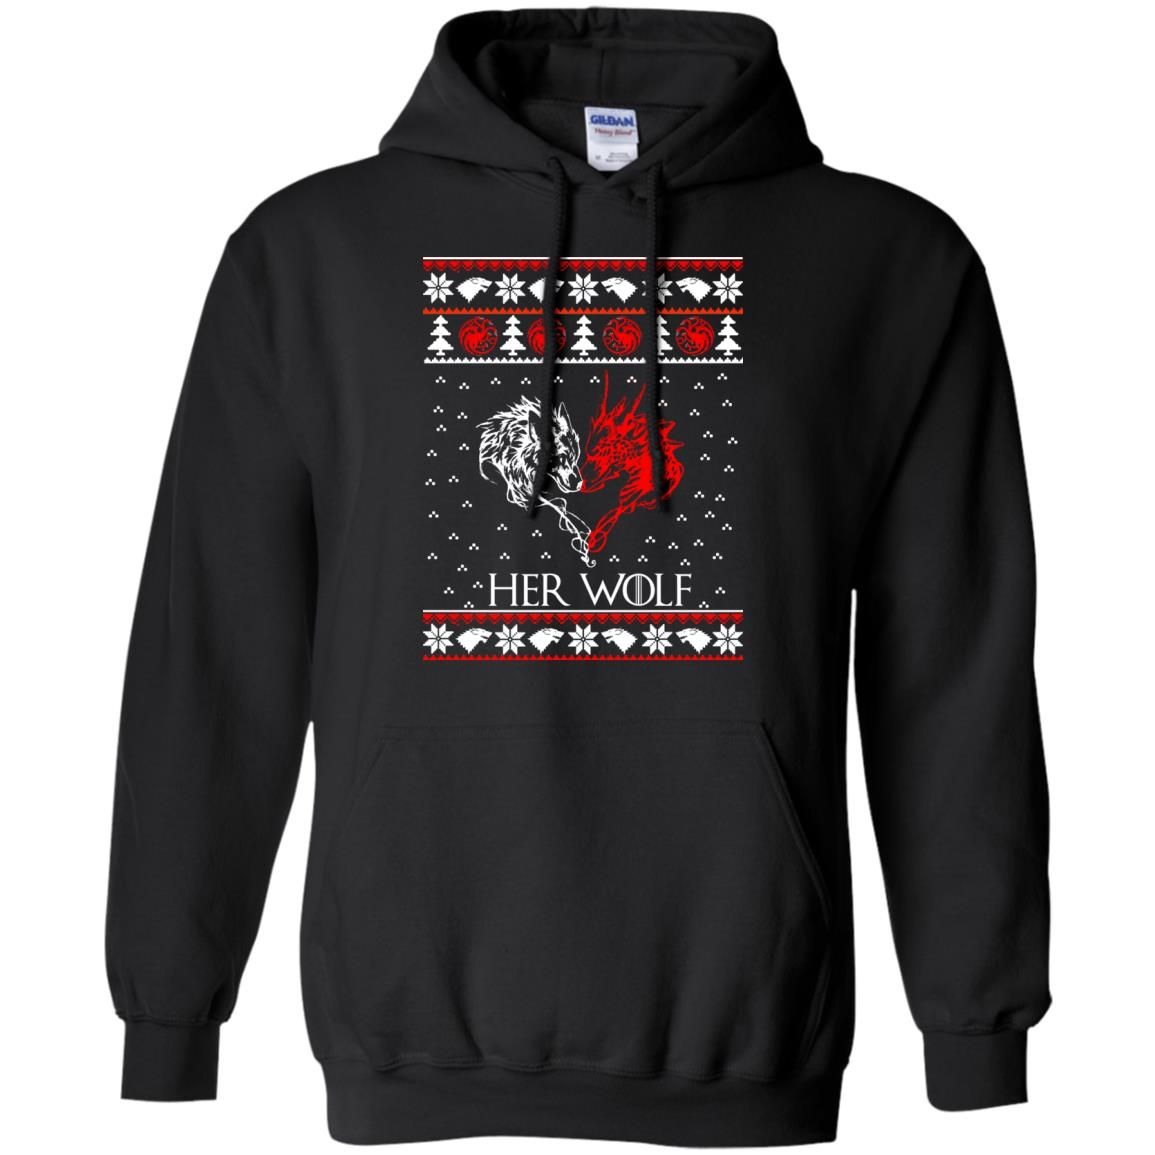 image 794 - Game of Thrones: Her Wolf Ugly Christmas Sweater, hoodie, shirt